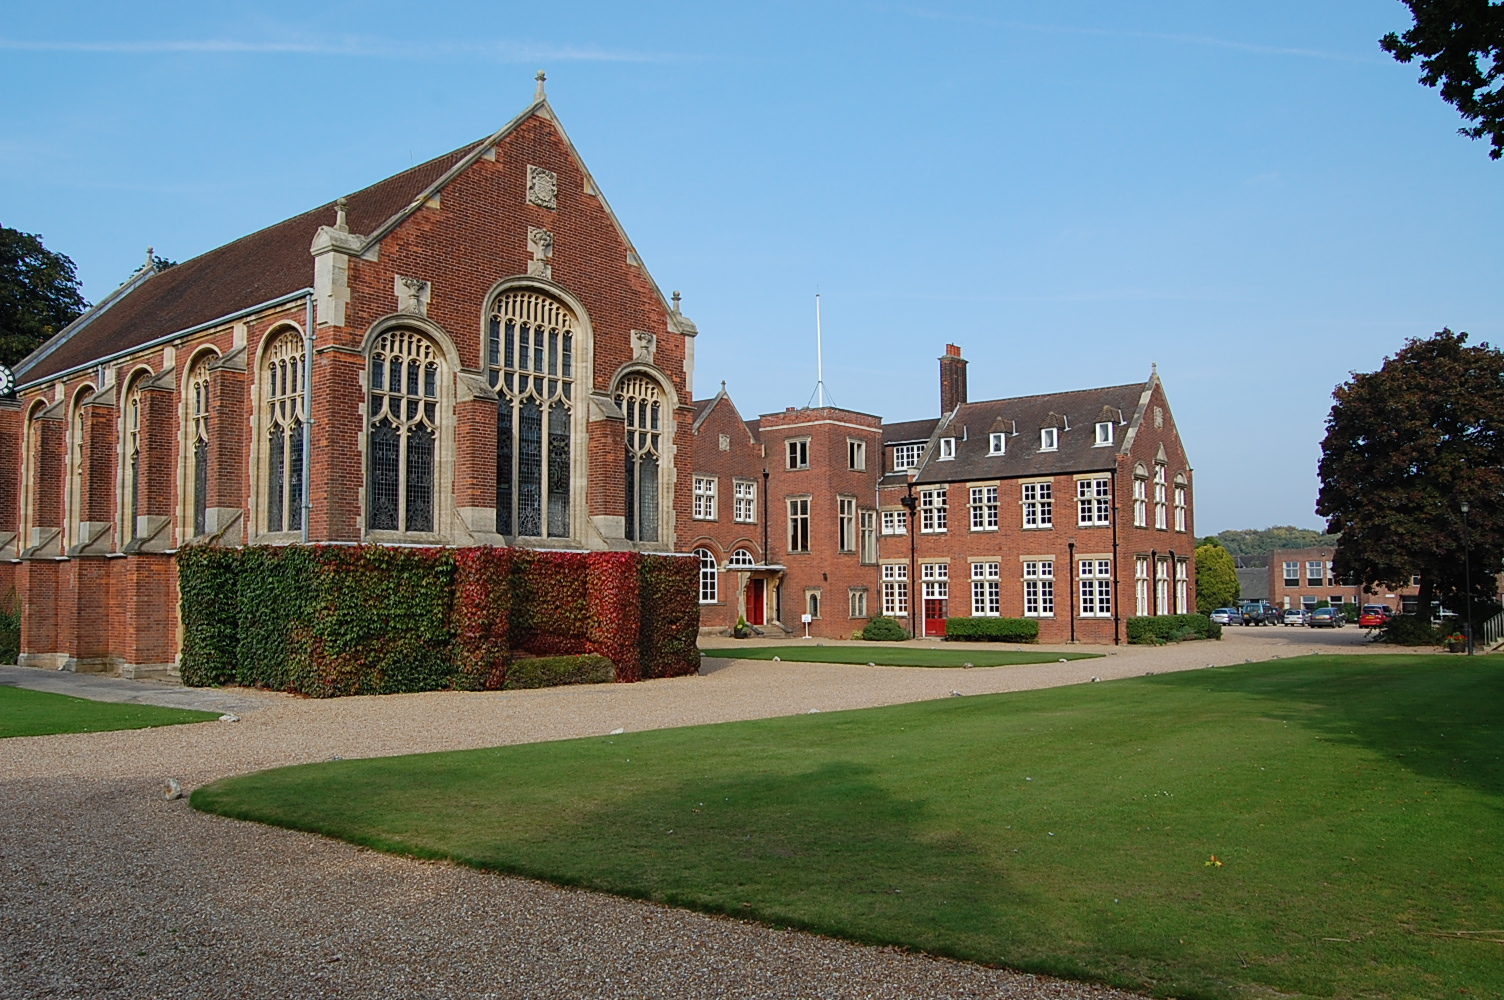 home school vs boarding school Not all therapeutic schools are boarding schools the difference between therapeutic day schools and therapeutic boarding schools as mentioned before, a student's home life becomes part of the focus at a therapeutic day school.